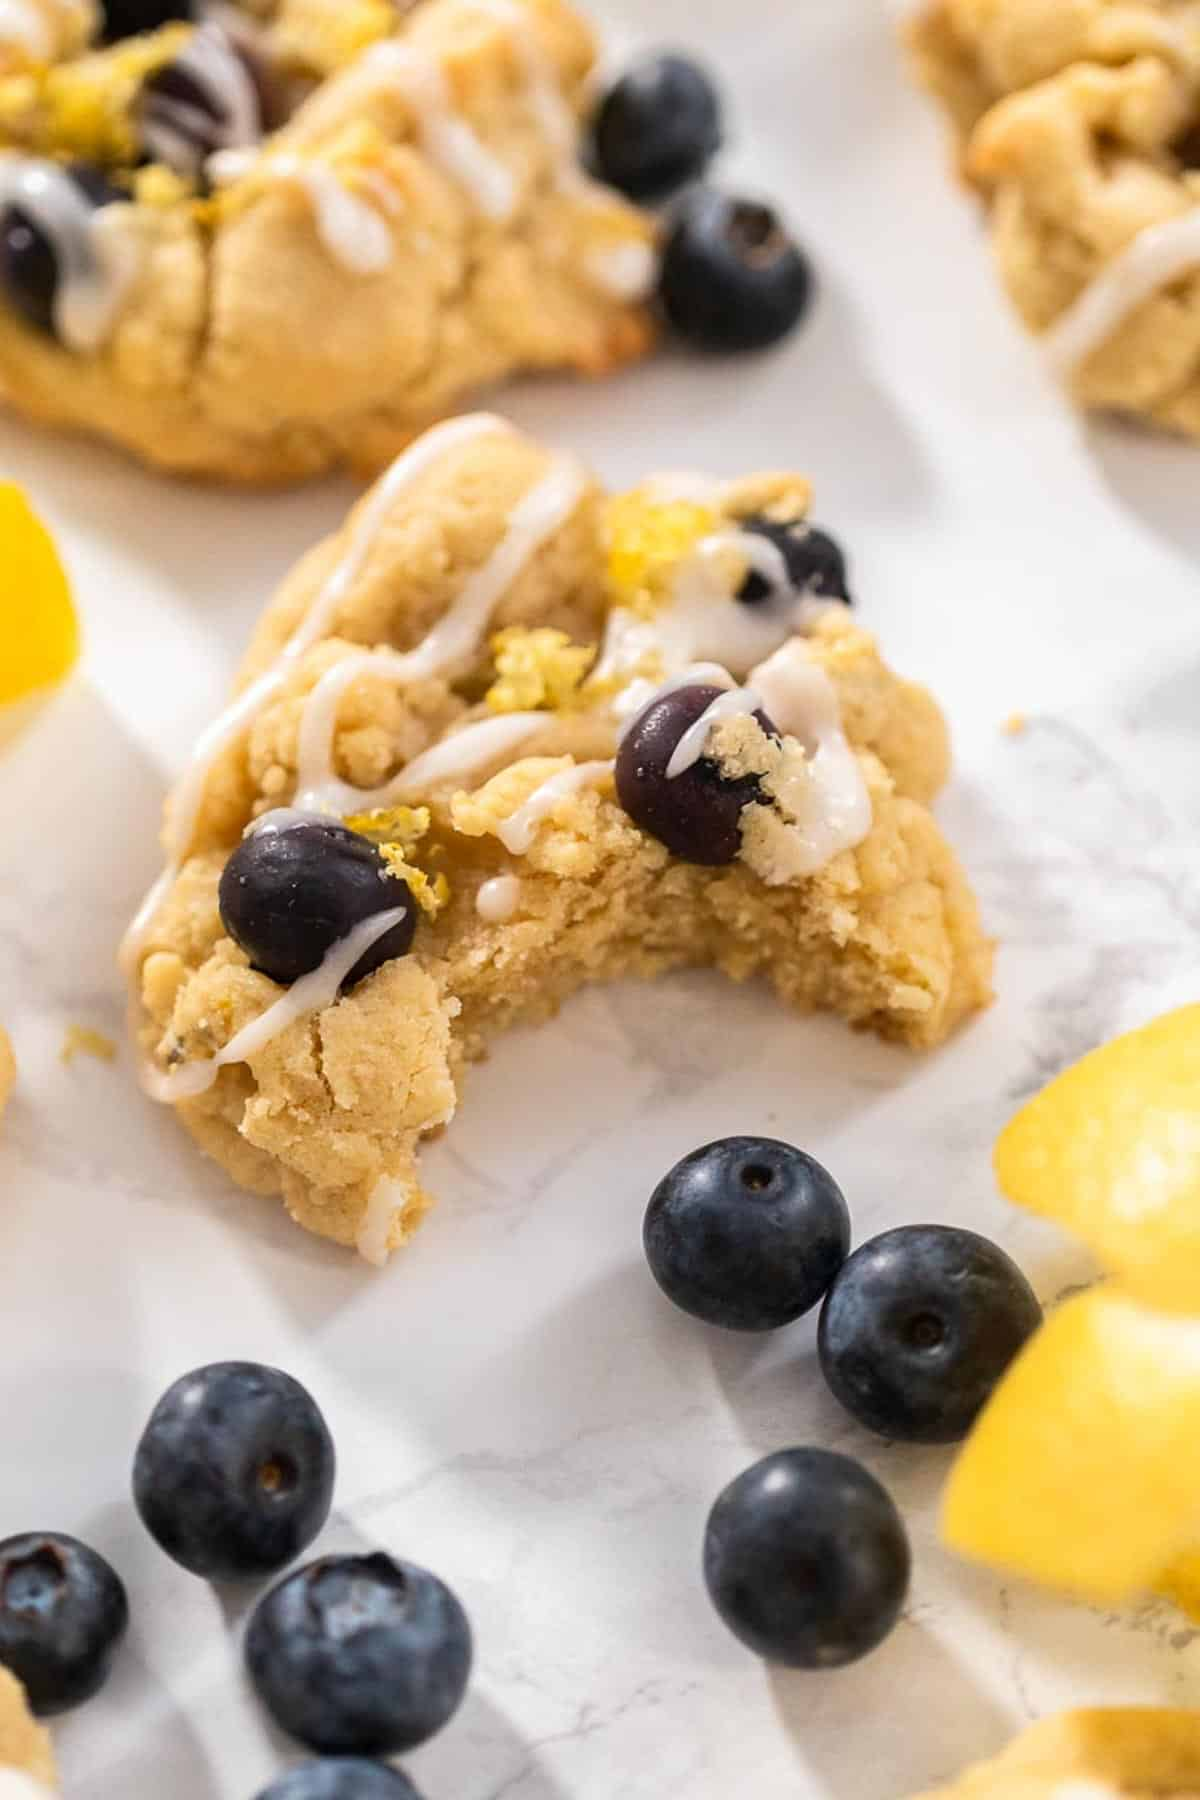 A blueberry lemon cookie with icing drizzled on top surrounded by fresh blueberries and lemon sitting upon a grey and white marbled counter top.